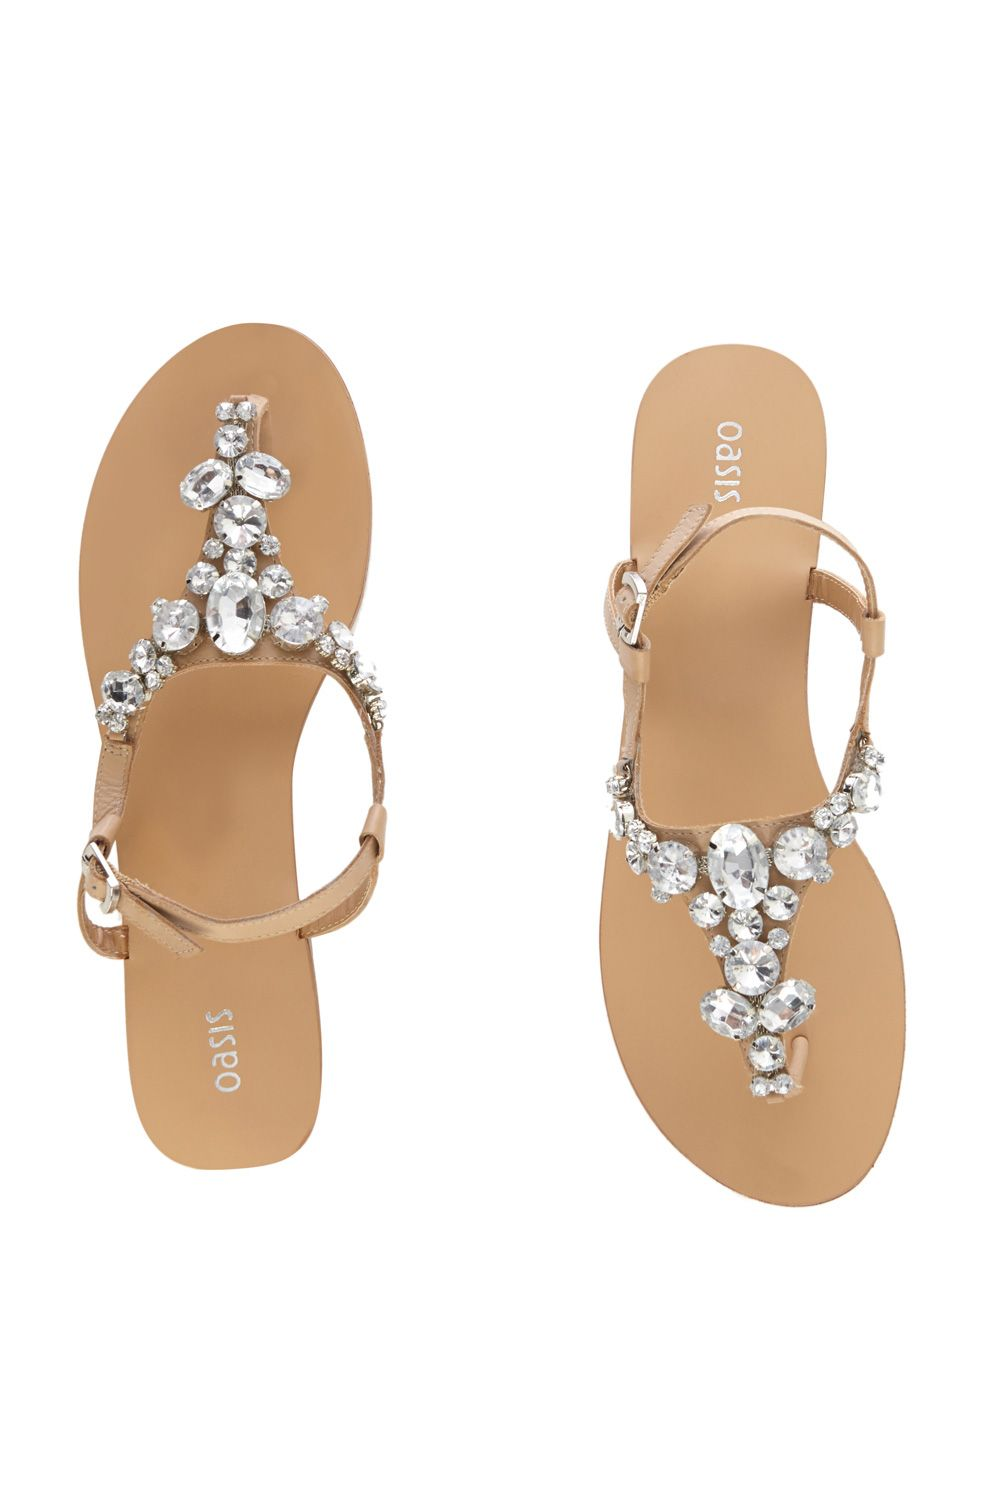 Gem stone leather sandals